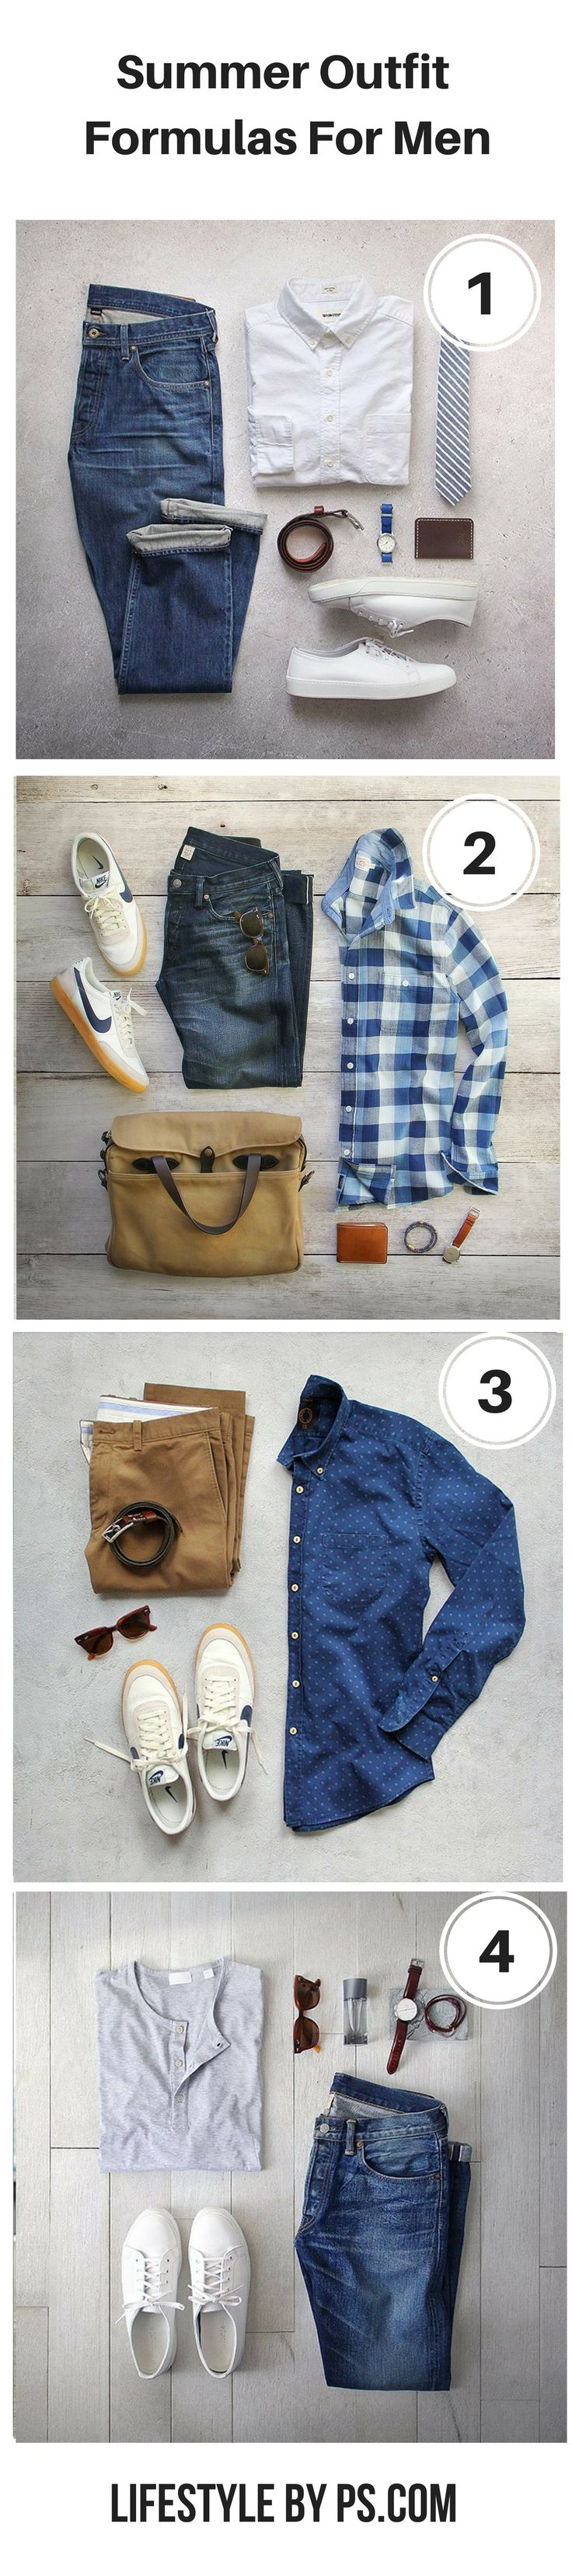 Summer Outfit Formula For Men #mens #fashion #outfitgrid http://www.99wtf.net/men/mens-fasion/latest-mens-suit-style-fashion-2016/